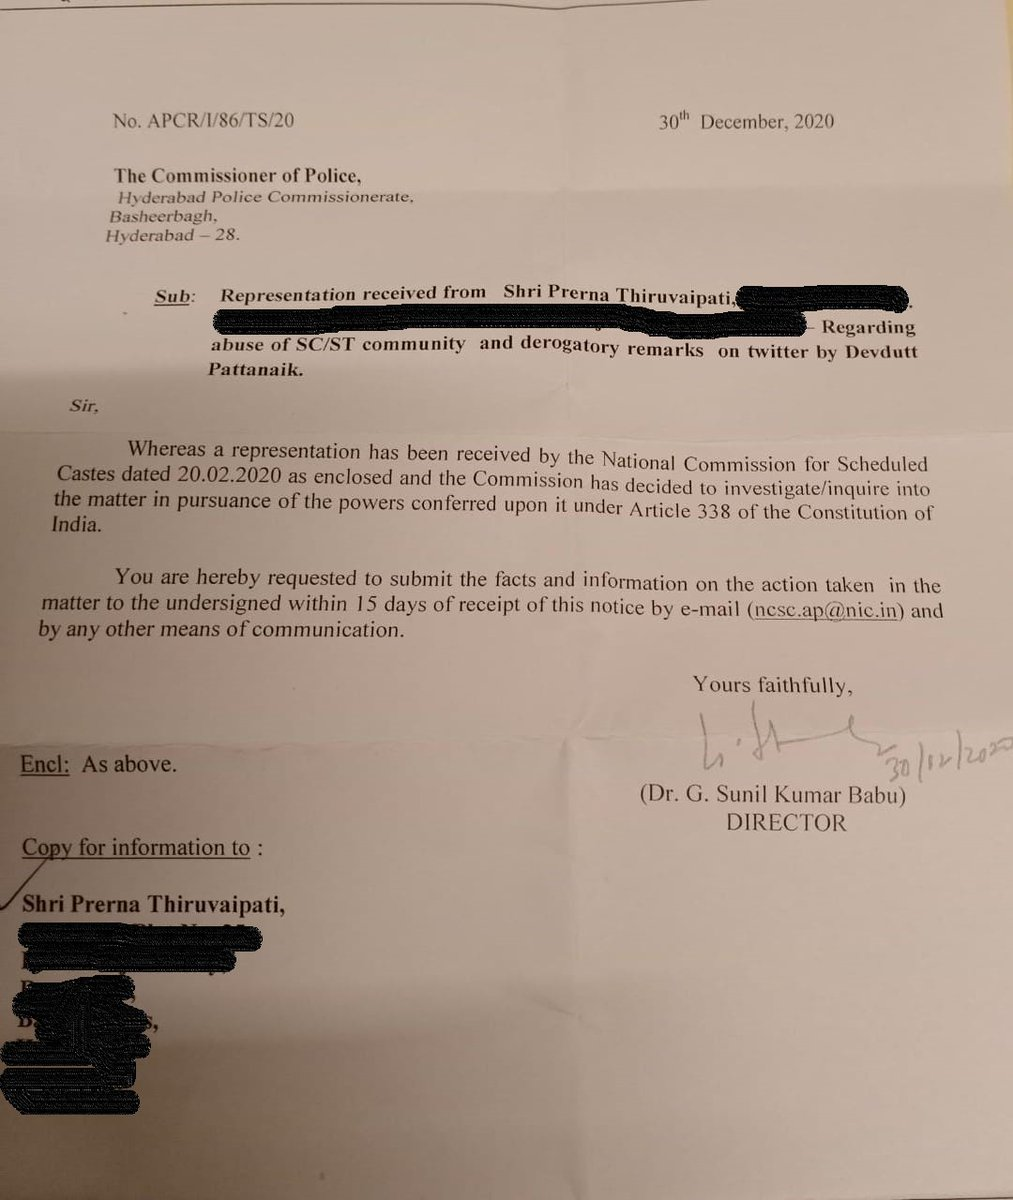 """""""Shudra Ho Shudra hi Rahogey"""" -@devduttmyth   Liberals, Leftists & Islamists may consider Shudra an Insult but we are Proud of Our identity & Dharma. It's high time we keep tolerating Casteist insults by these So Called Intellectuals. Filed a Legal Case against Devdutt Pattnaik."""